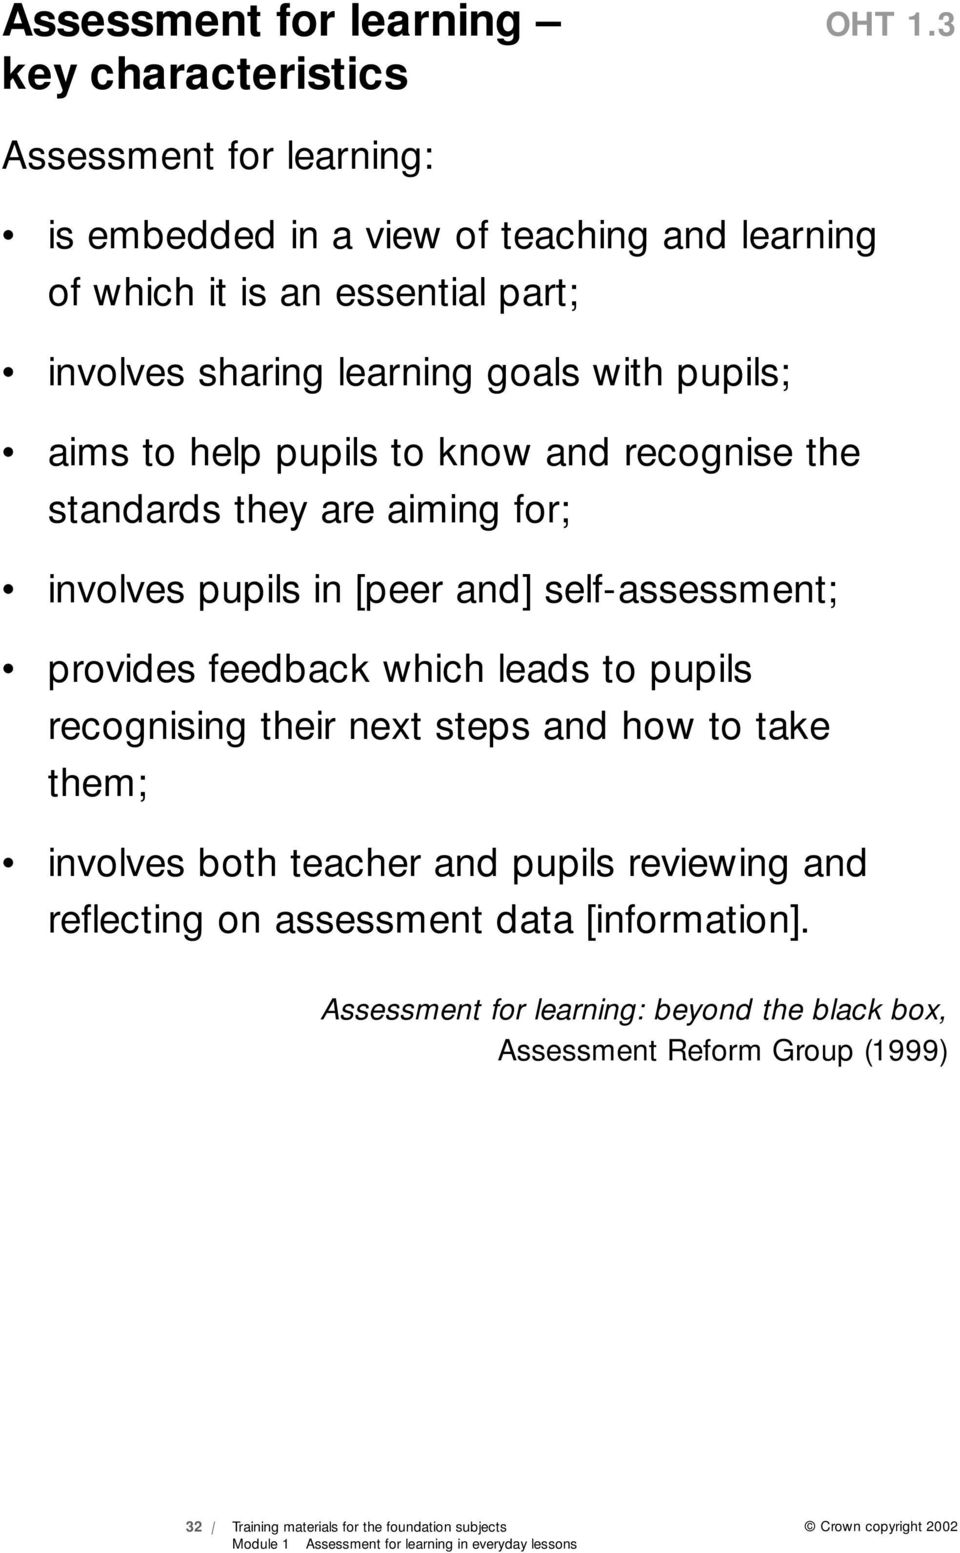 to help pupils to know and recognise the standards they are aiming for; involves pupils in [peer and] self-assessment; provides feedback which leads to pupils